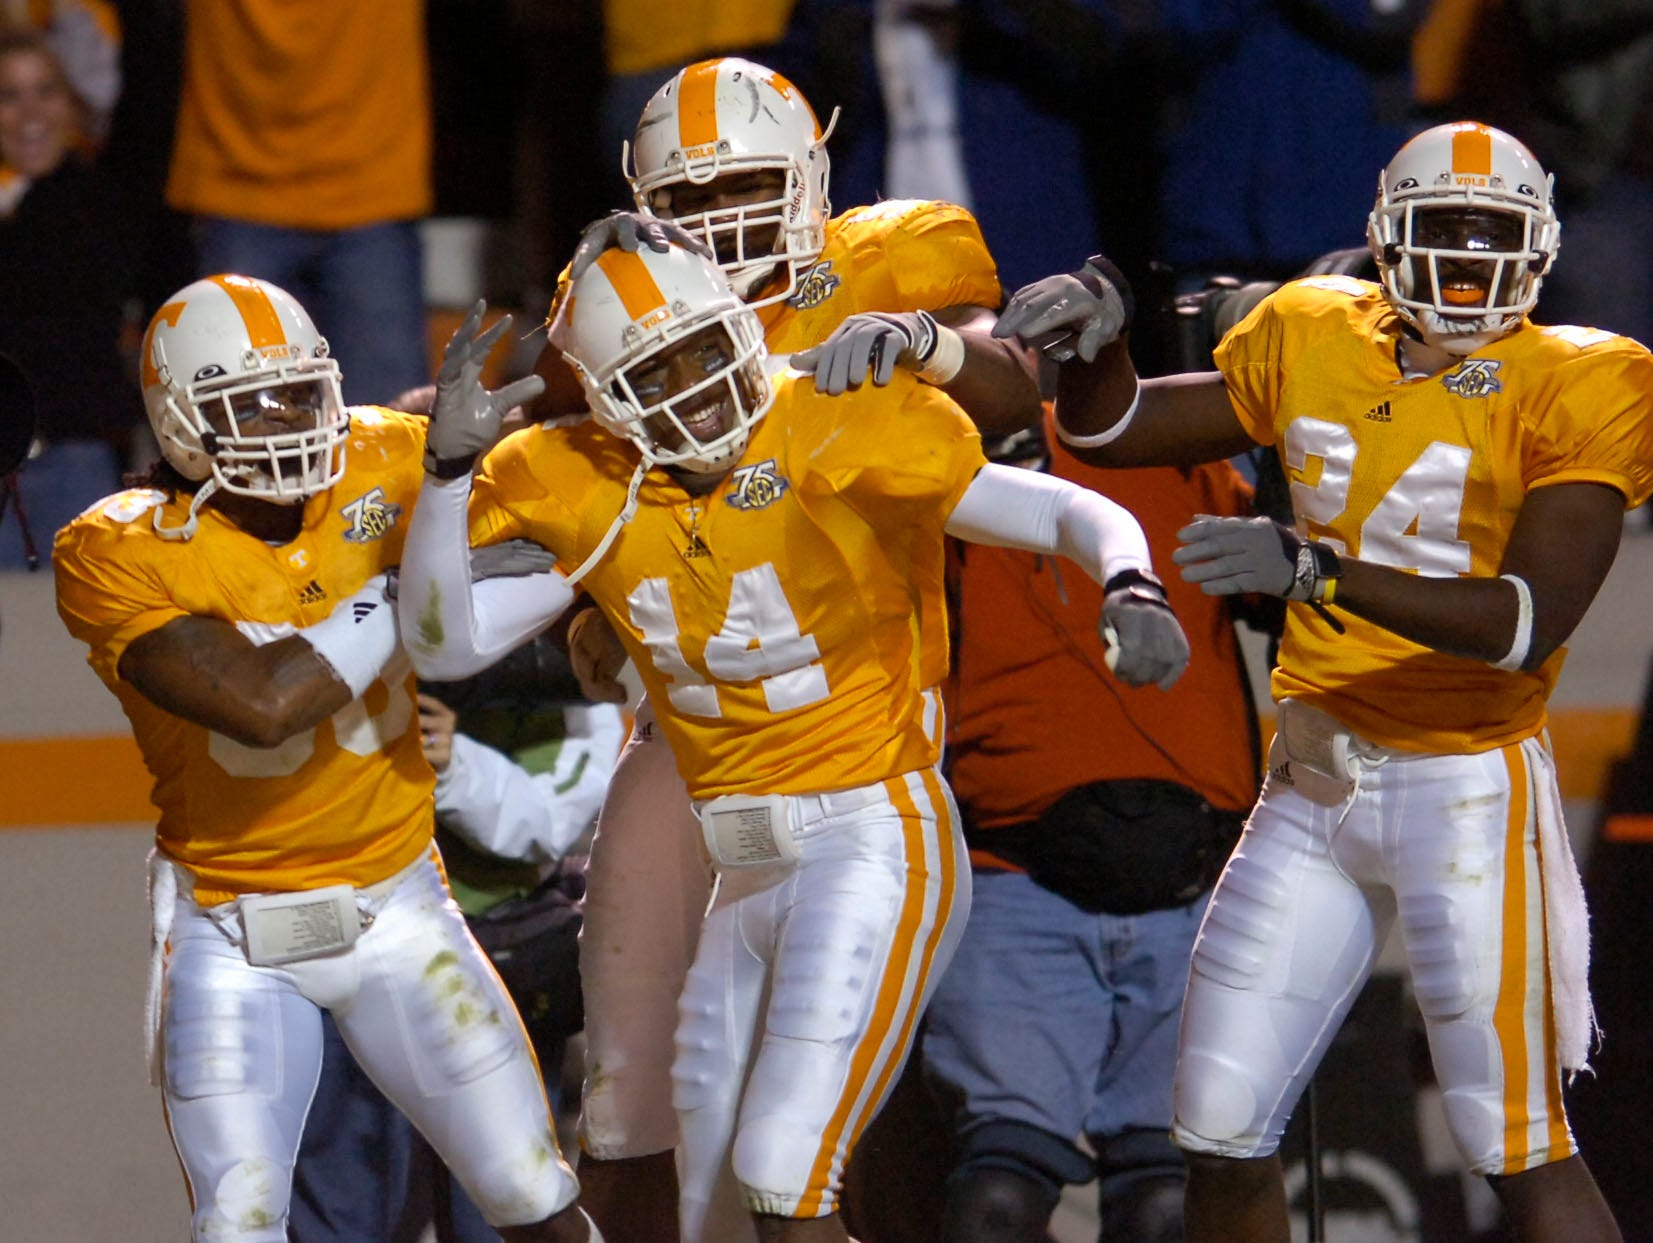 Tennessee defensive back Eric Berry (14) is congratulated by teammates after a 47-yard fumble return against South Carolina on Saturday at Neyland Stadium. The Vols survived a second half defensive collapse to win 27-24 in overtime, improving to 5-3 for the season.